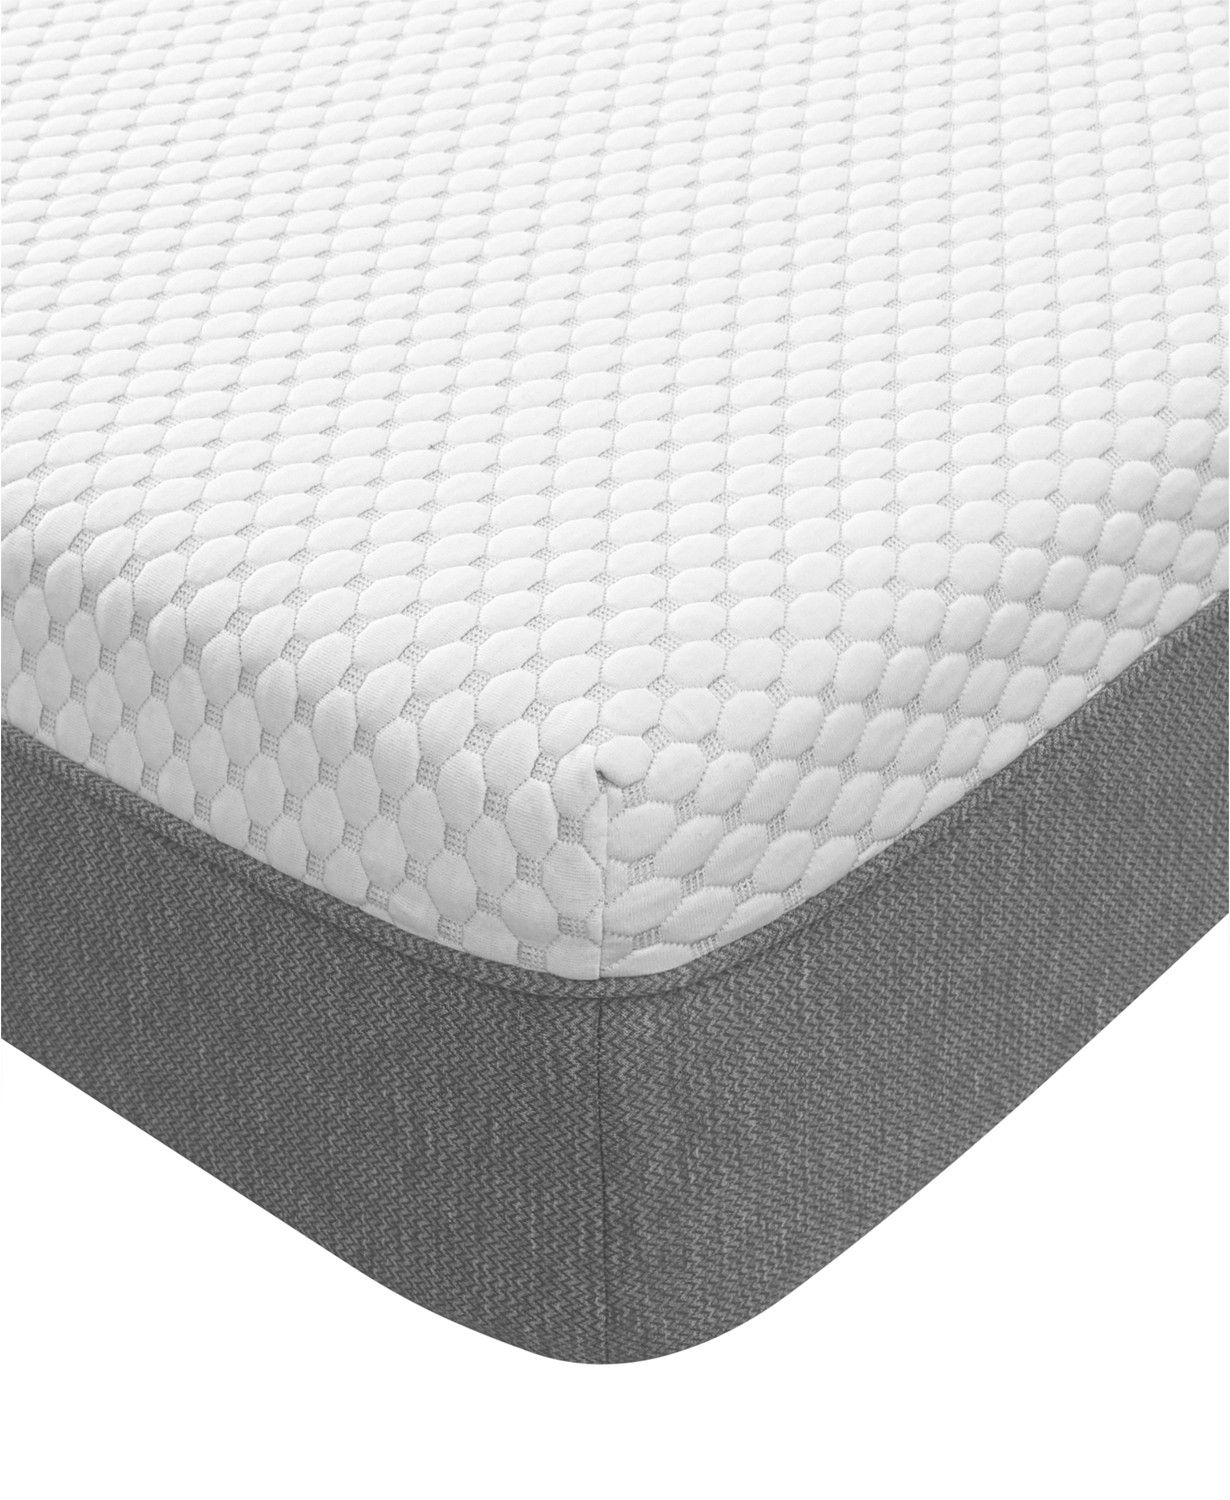 Martha Stewart Collection 10 Memory Foam Mattress King Quick Ship Mattress In A Box Ma Queen Memory Foam Mattress Foam Mattress Firm Memory Foam Mattress